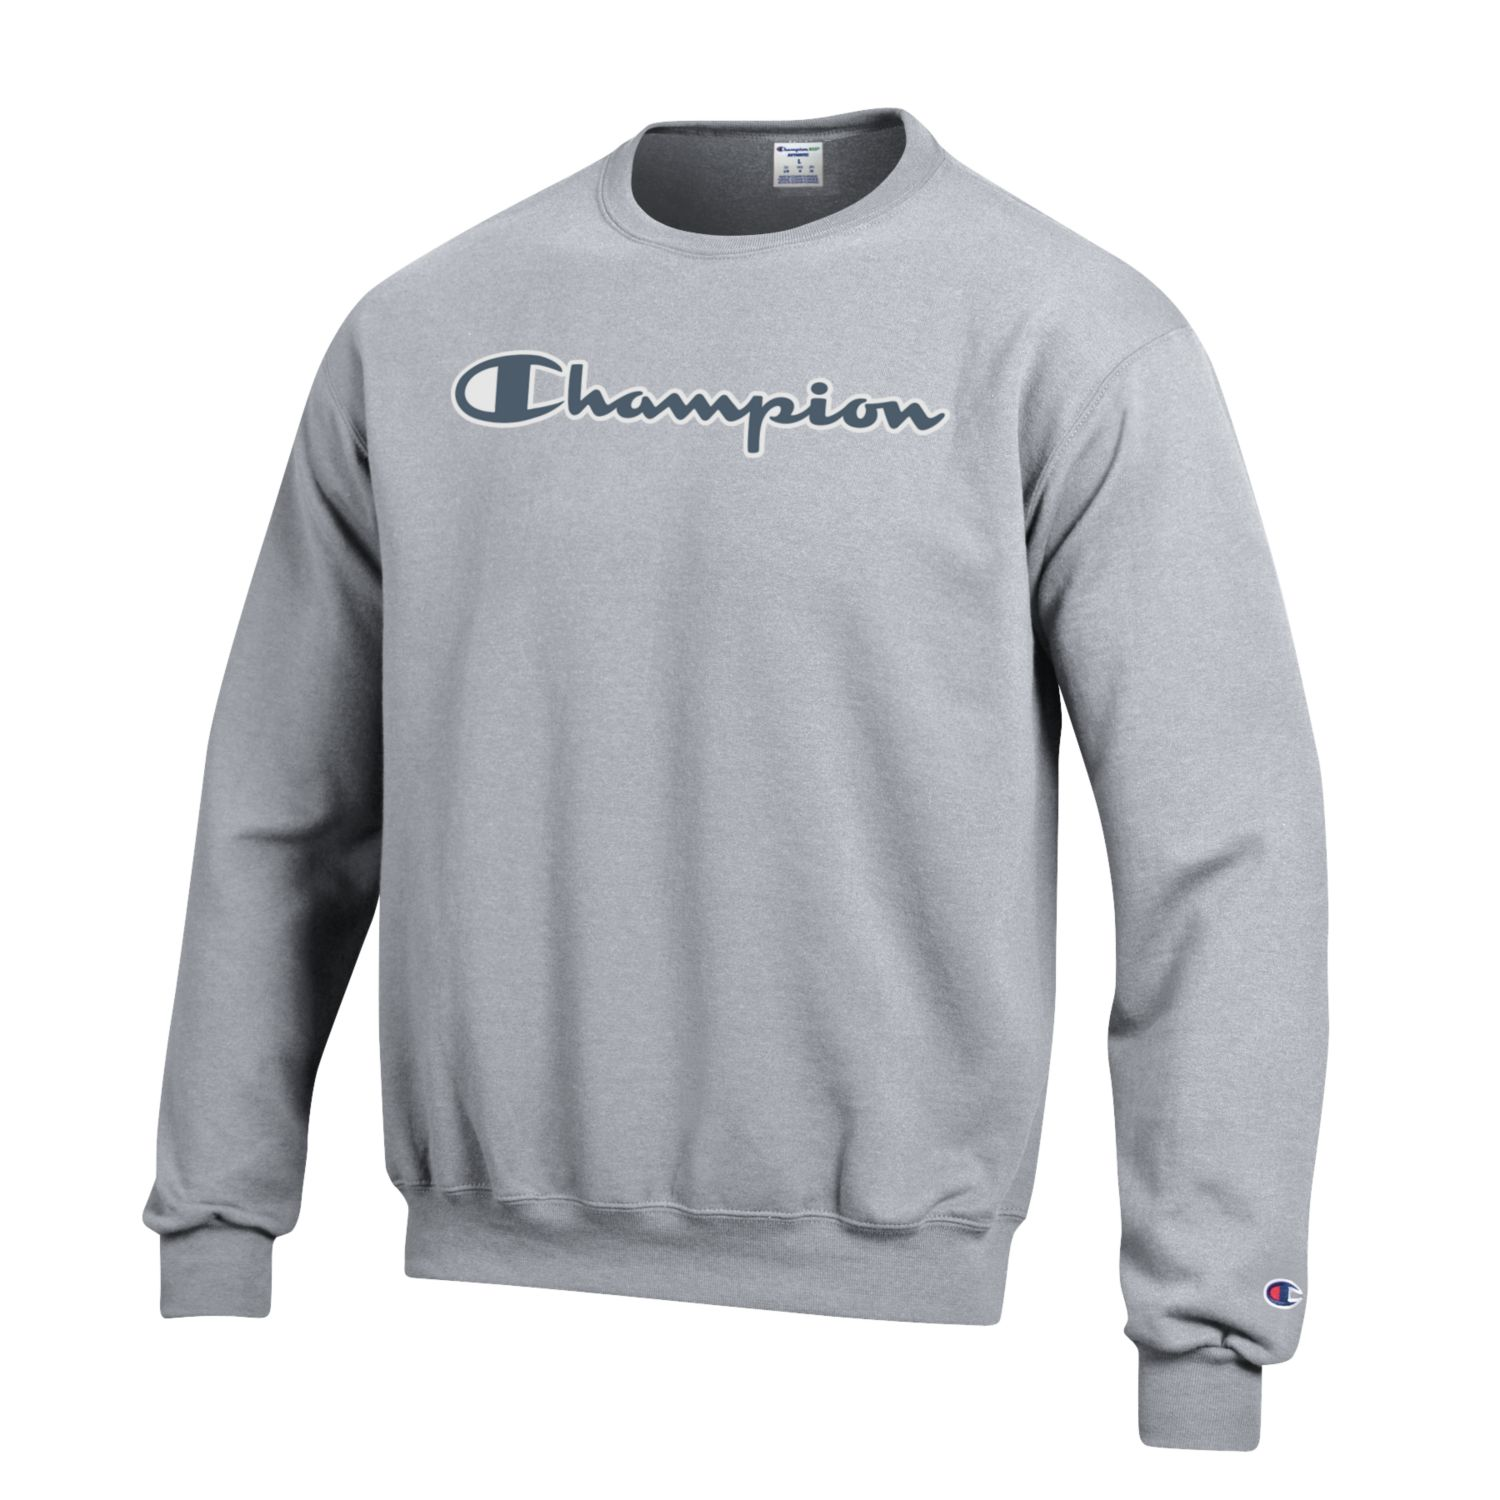 3da6618ae Champion: Eco Powerblend Crew - Heather Grey